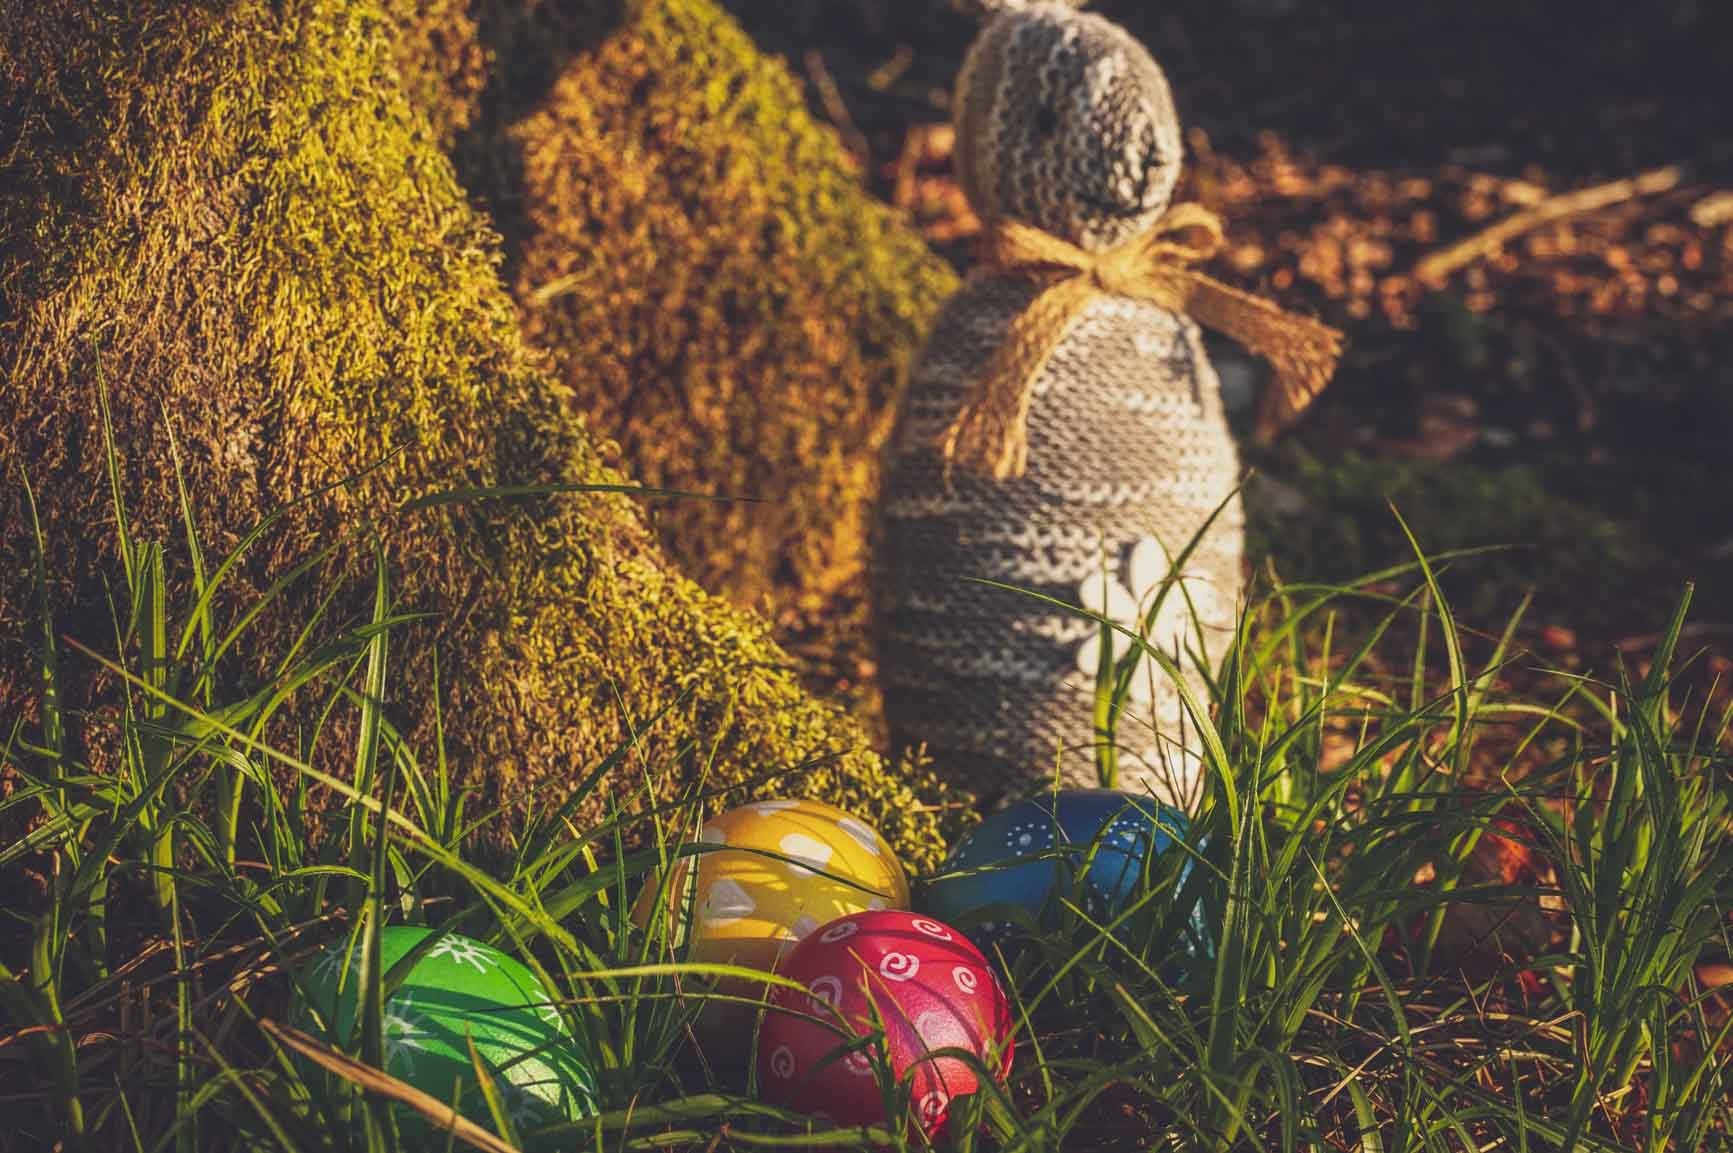 Easter Egg Hunt – Sunday the 12th of April